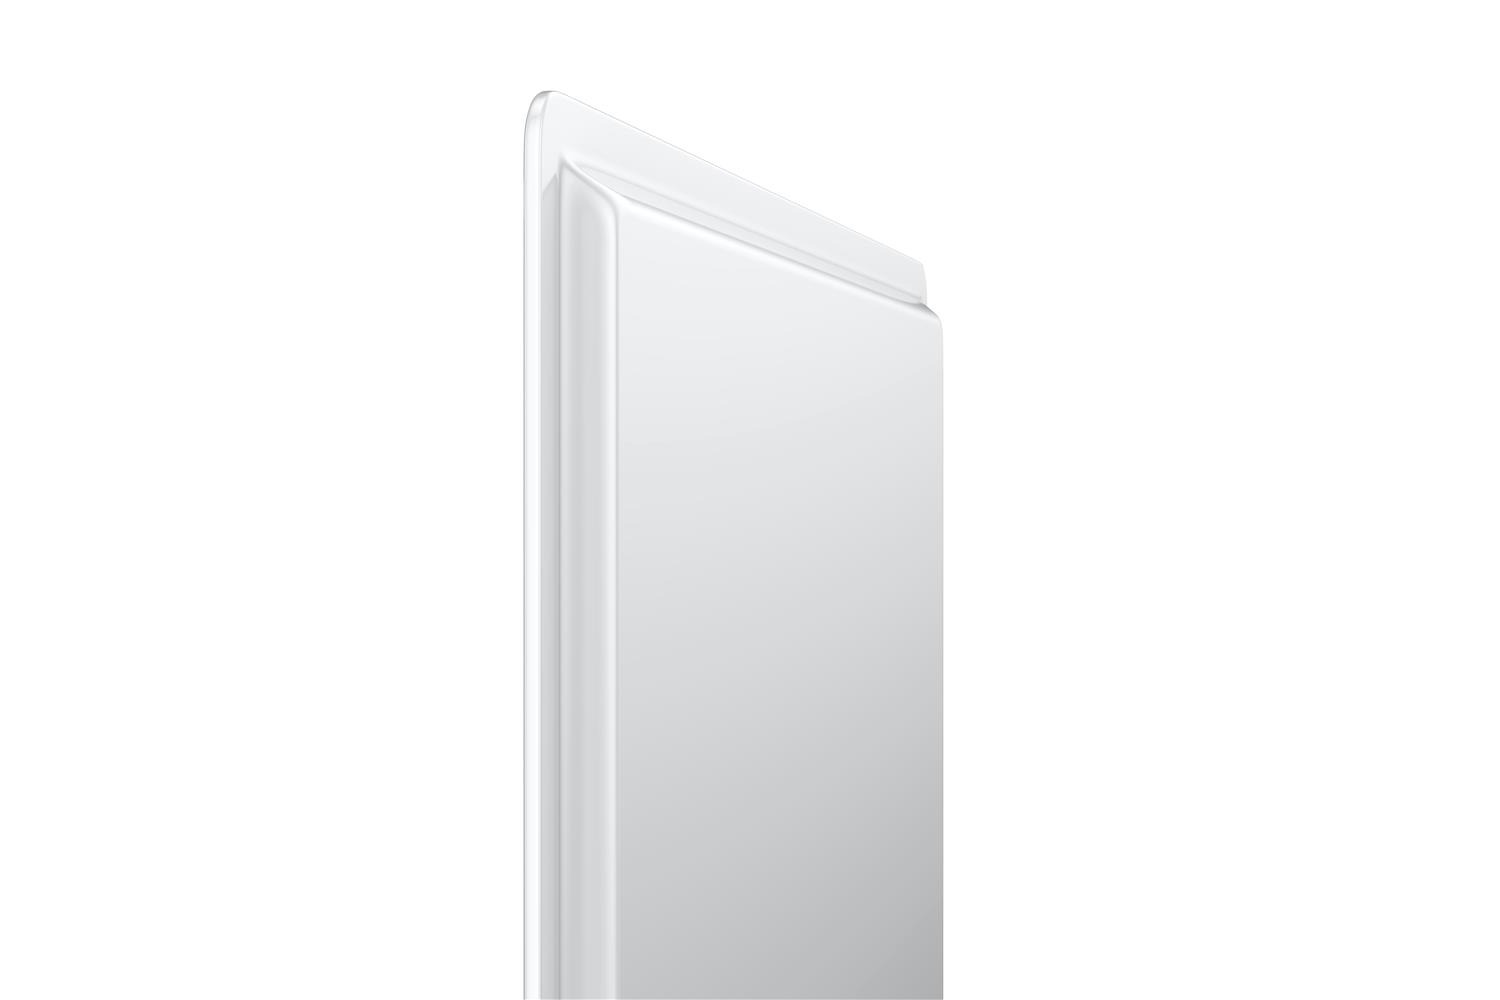 LED panel light 595x595 Europe UK ultrathin led flat panel light CE CB ROHS TUV certificate